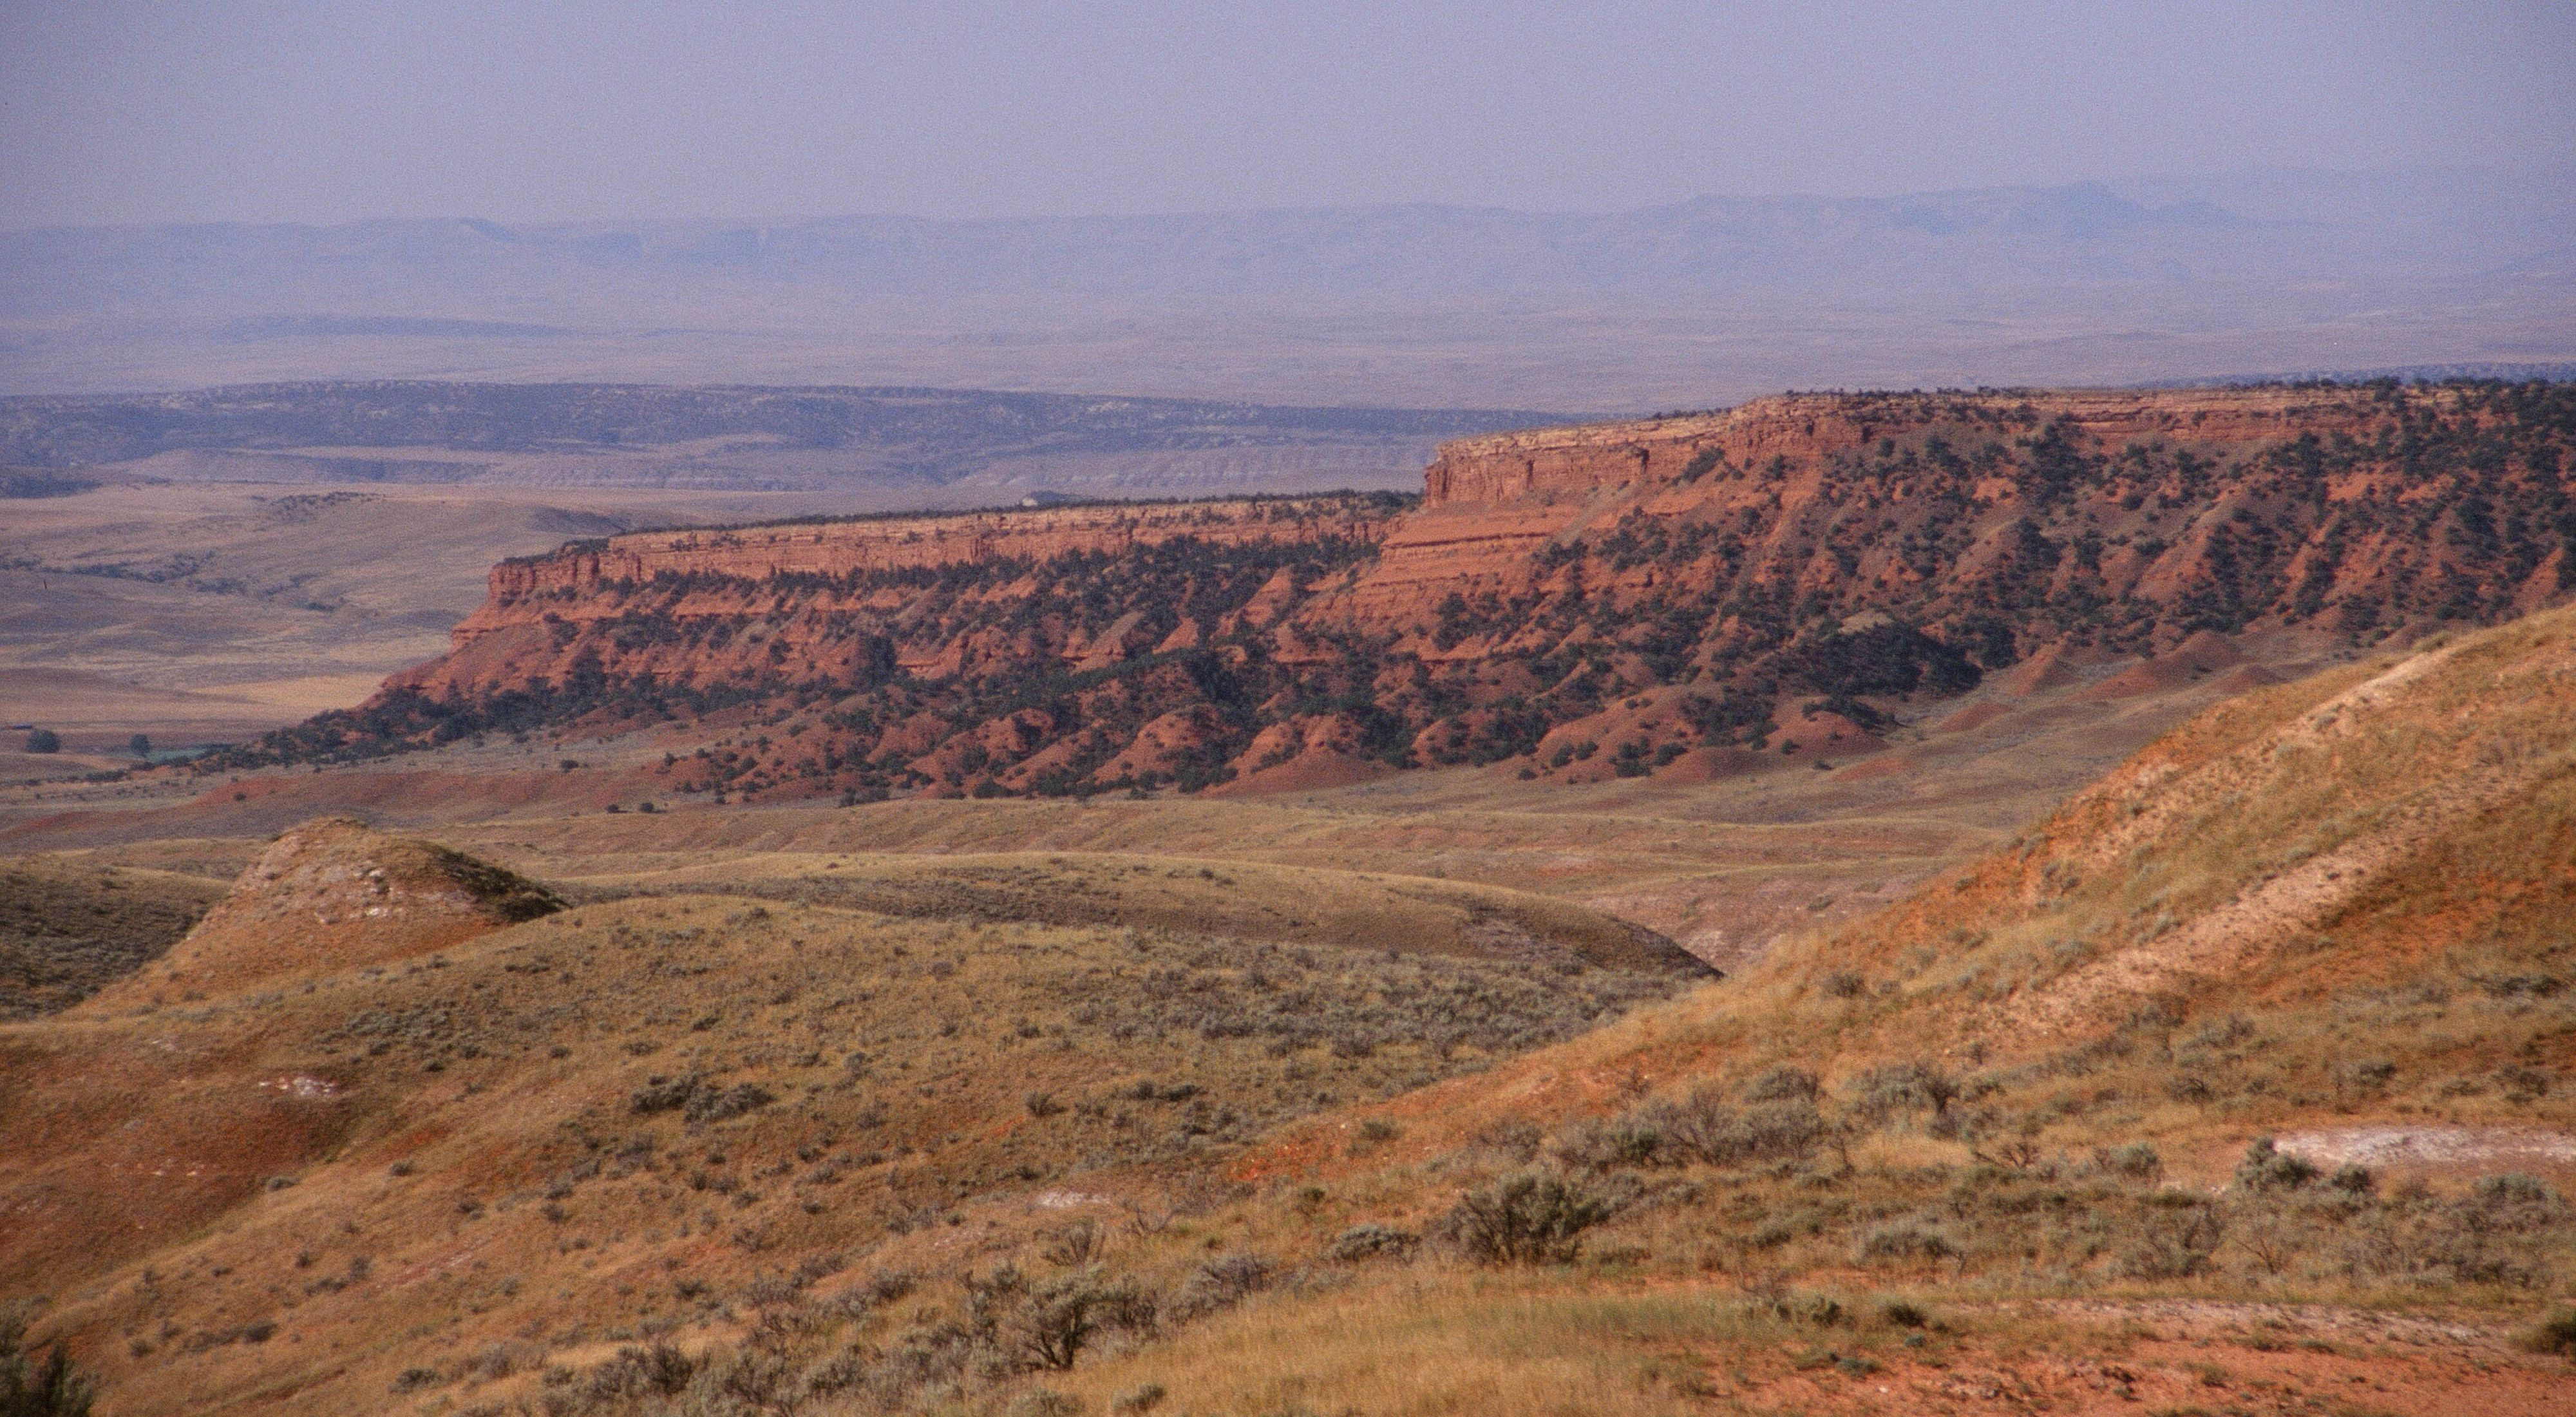 (ALL INTERNAL RIGHTS) The land as it rises up to Tensleep Preserve from the Big Horn Basin. PHOTO CREDIT: © 1996 Edward Orth